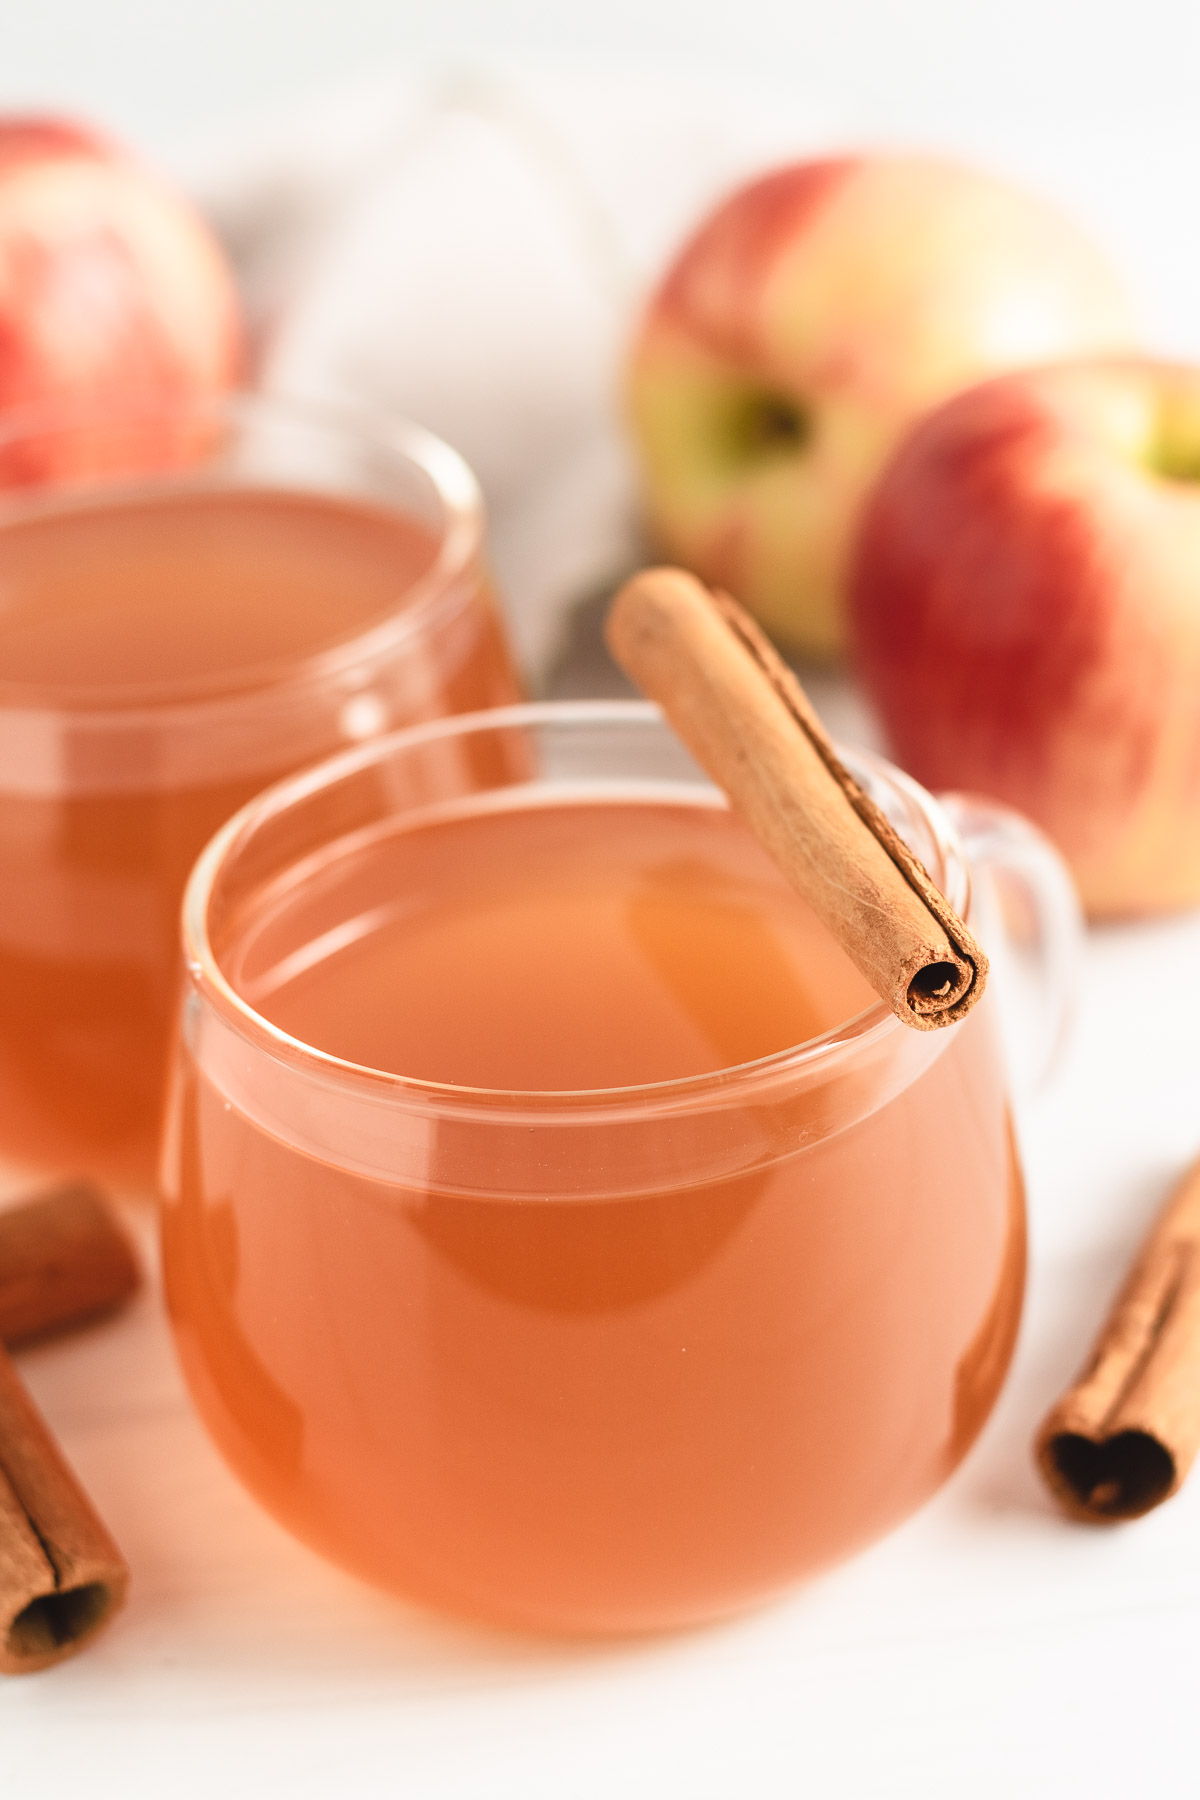 Glass mug filled with cider and a cinnamon stick.